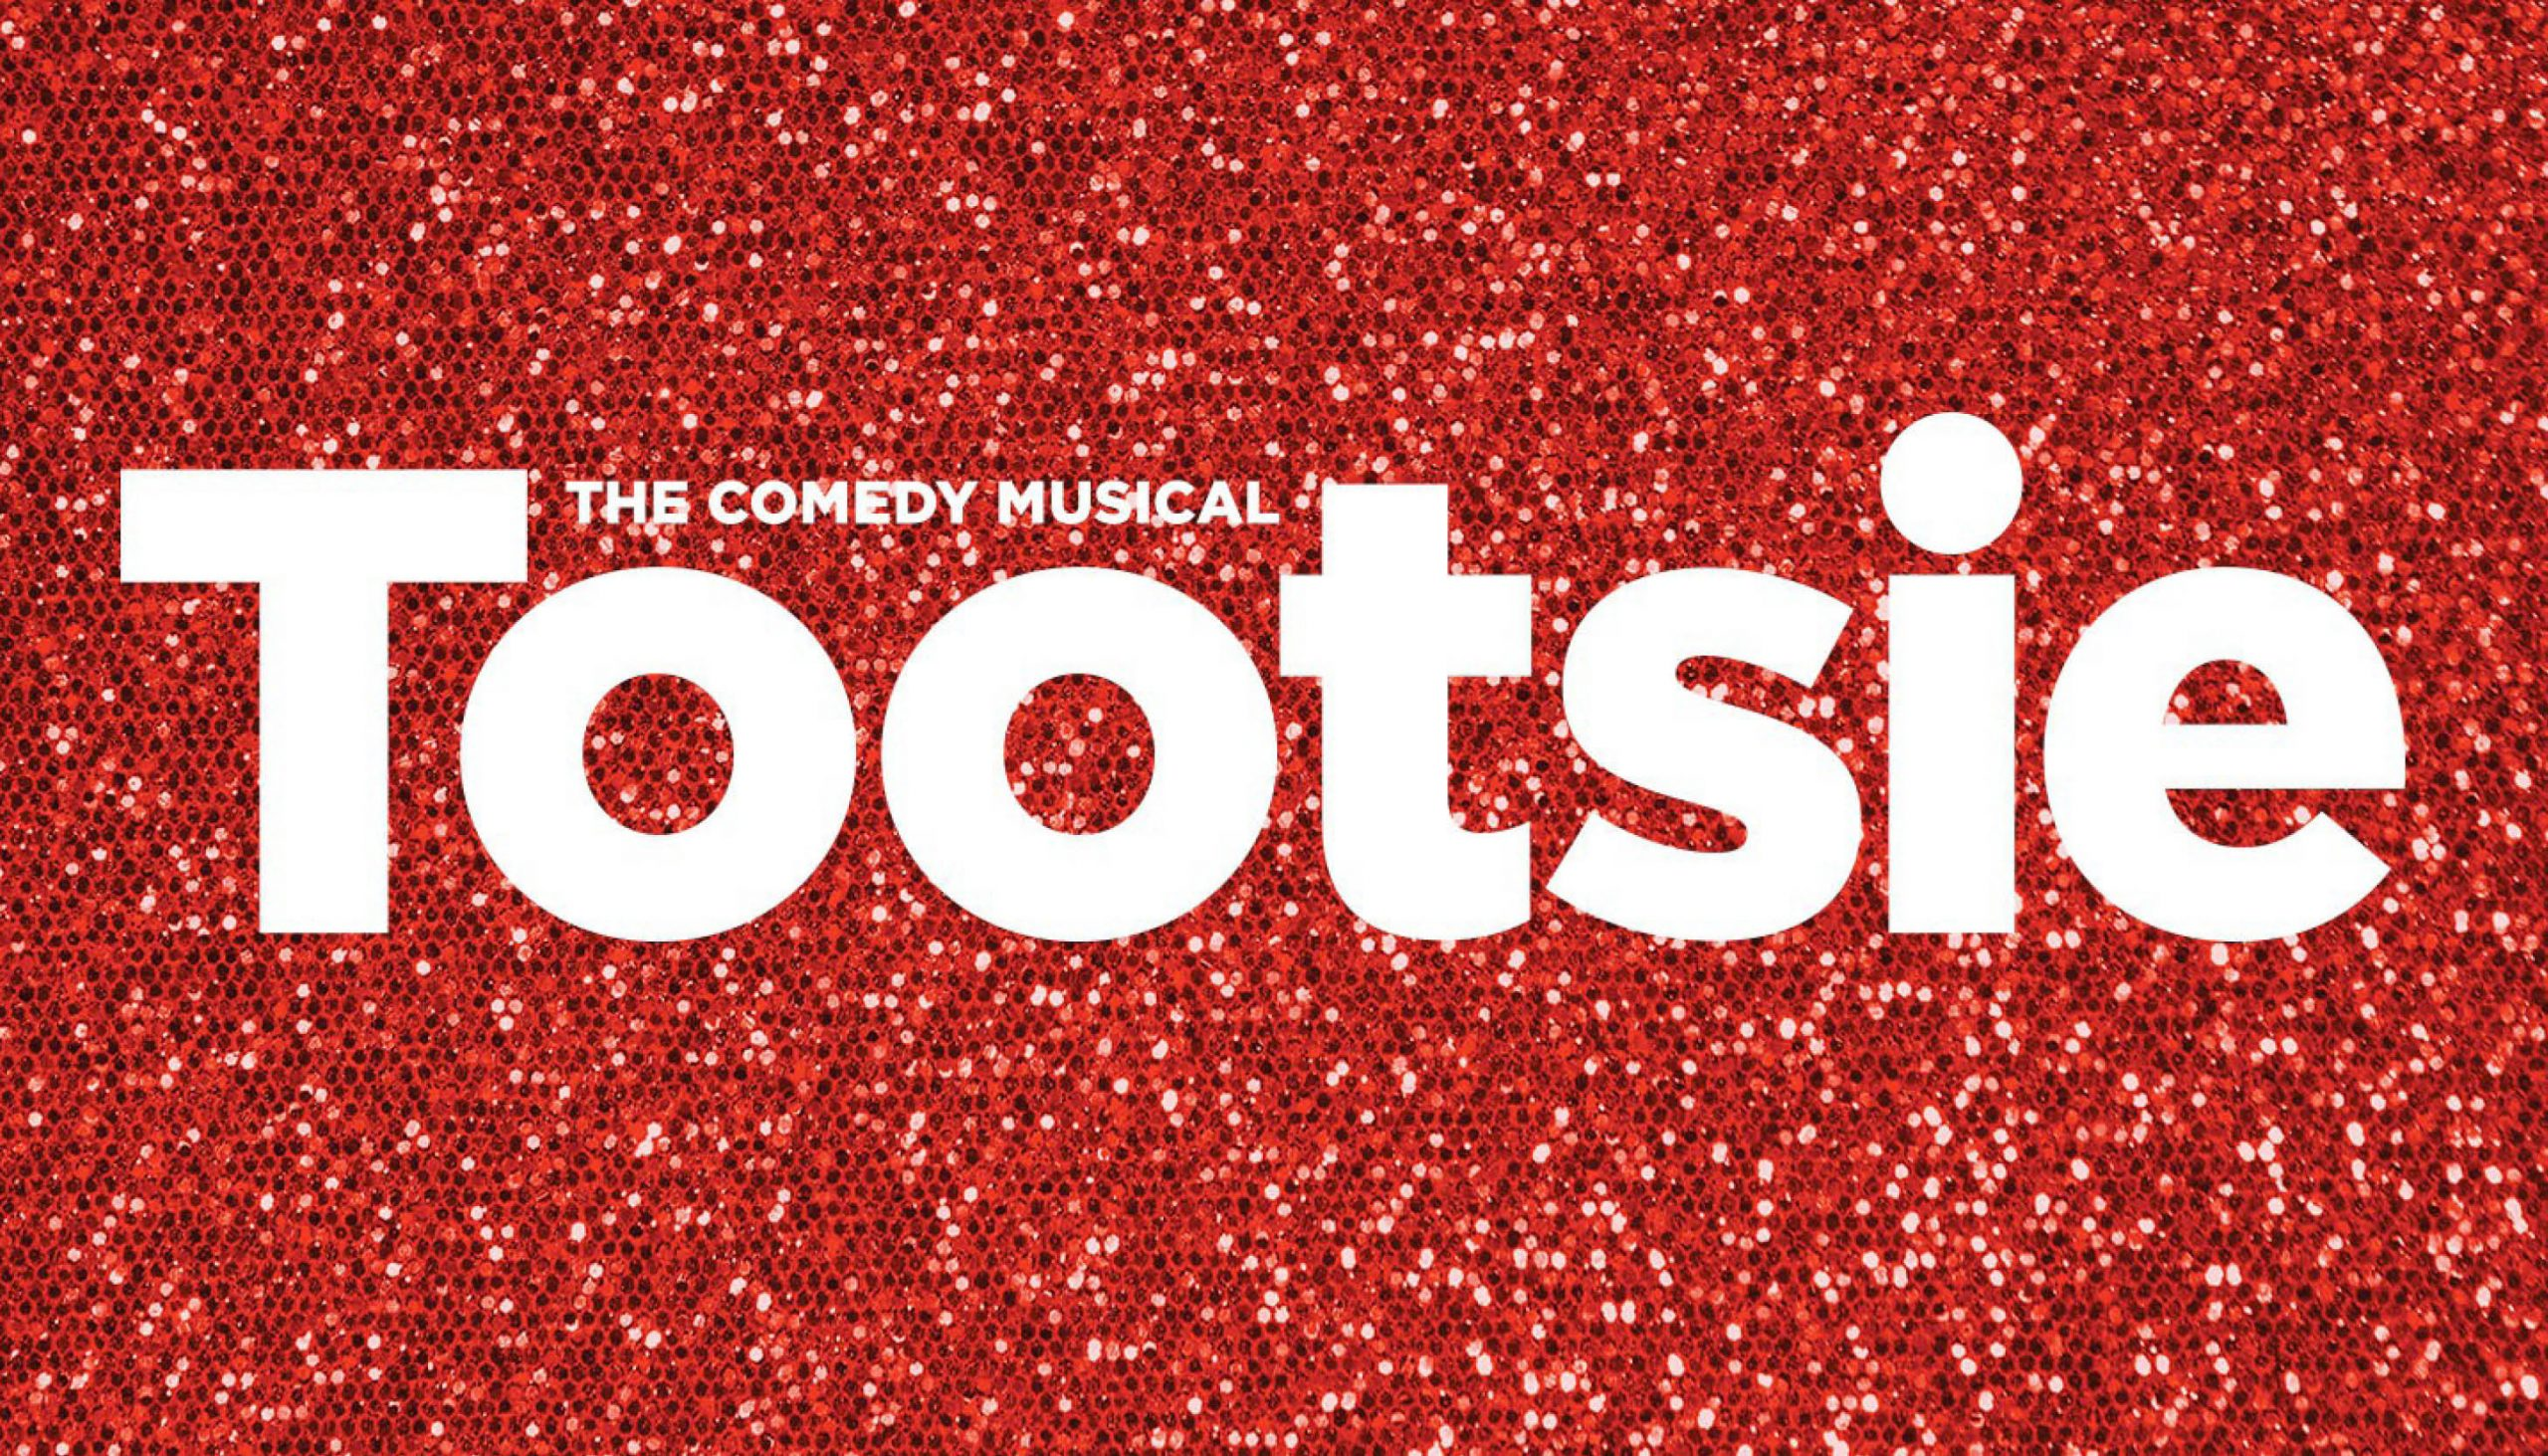 Tootsie, The Comedy Musical